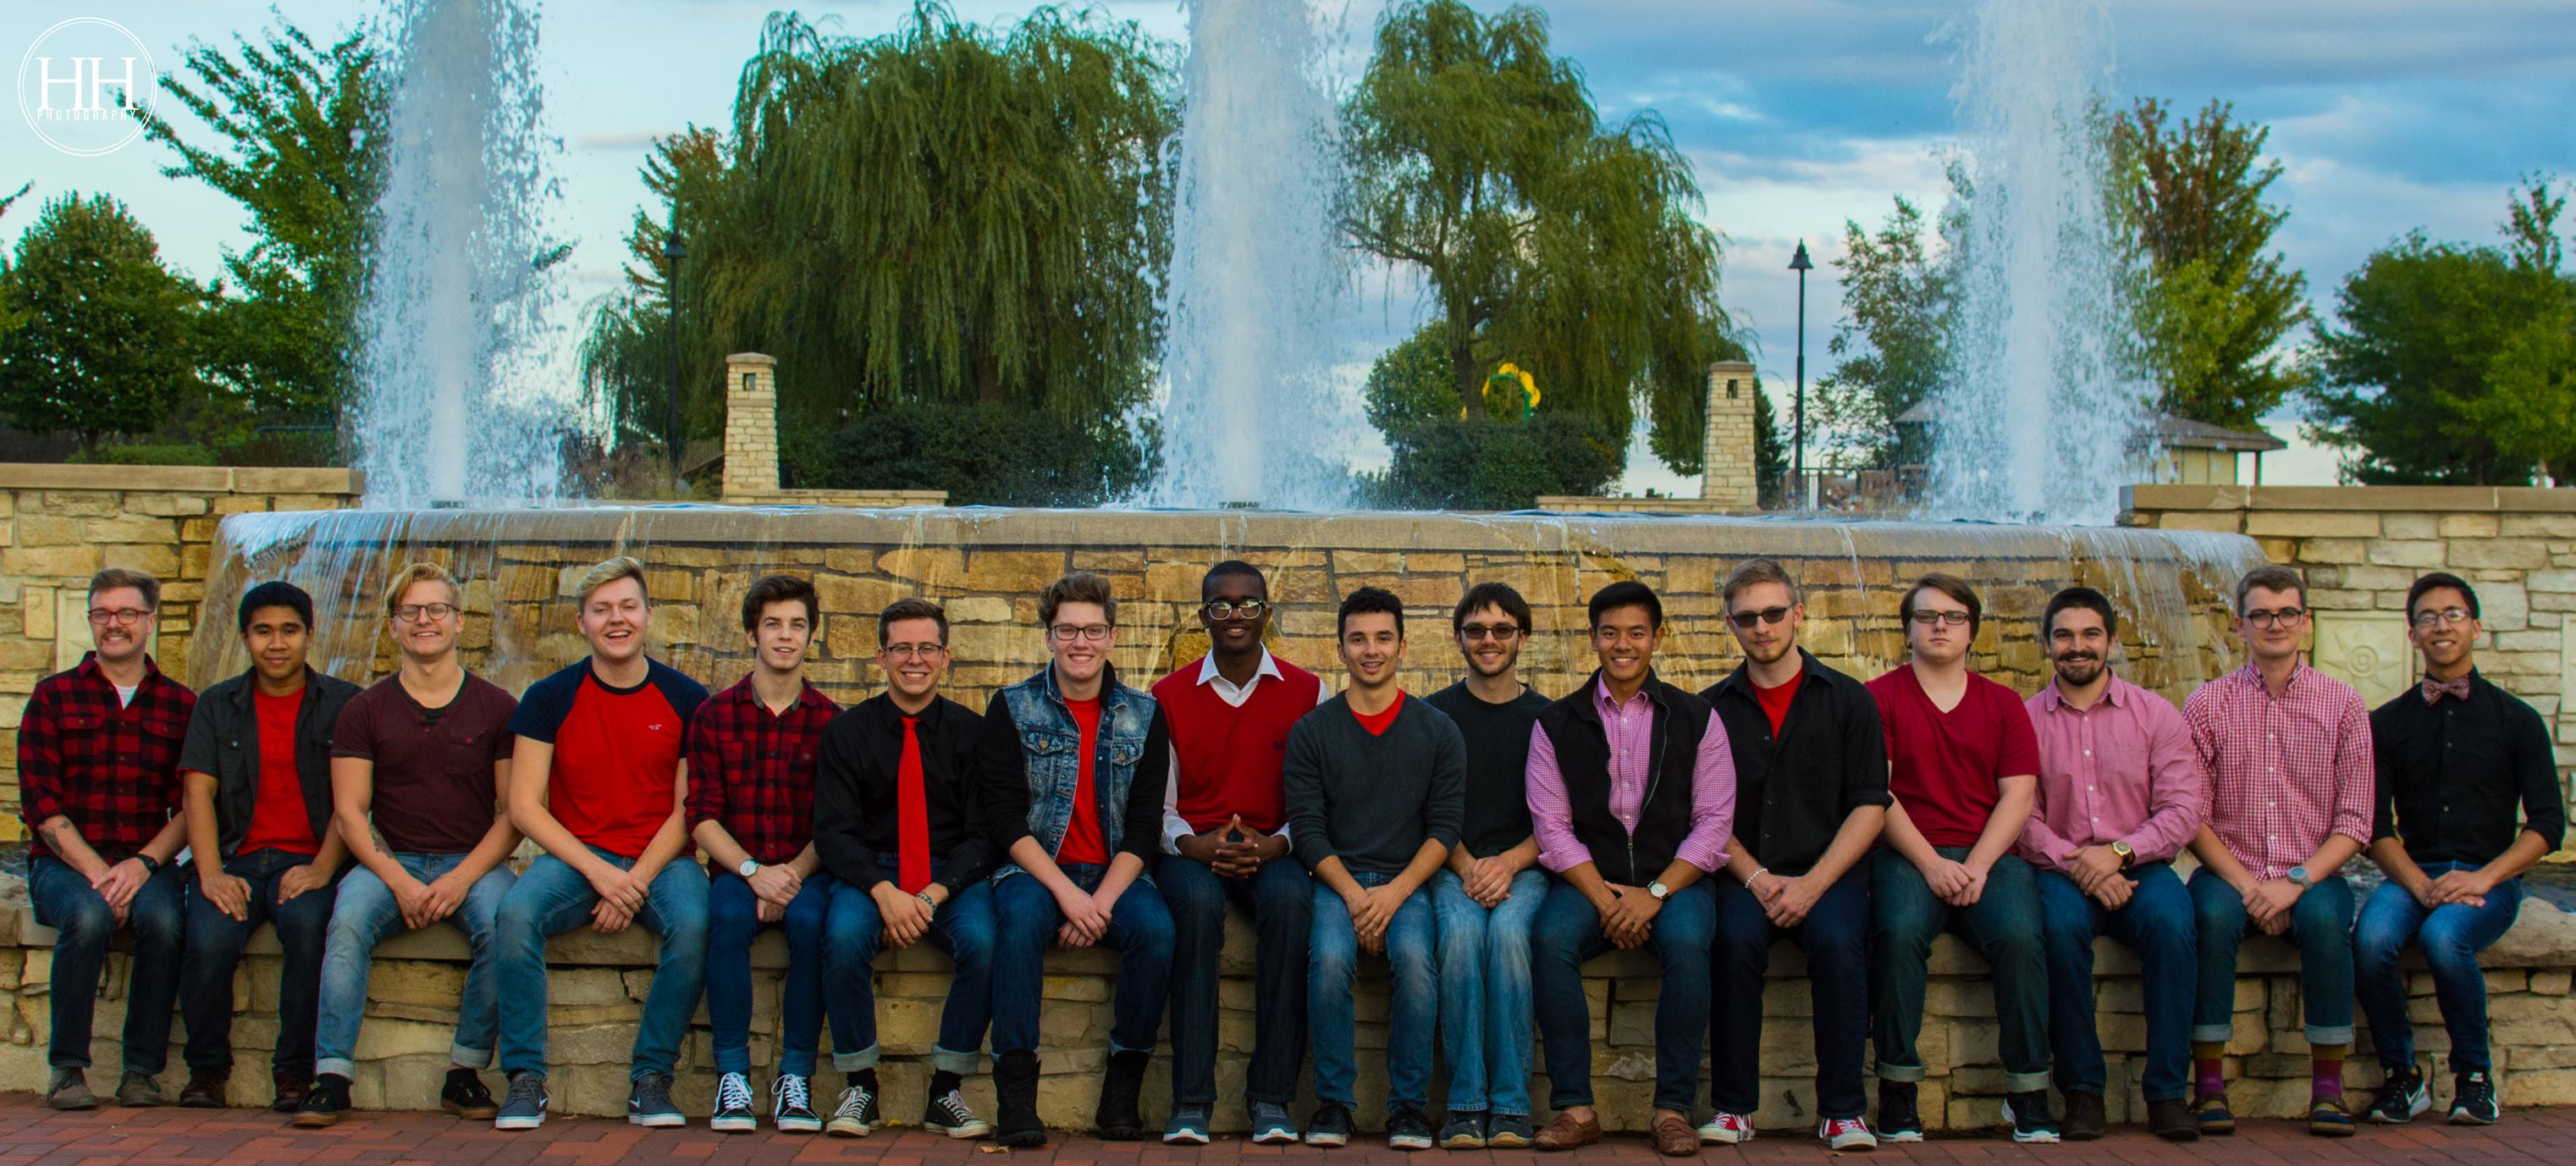 Pitch perfect: ISU a cappella groups to compete at ICCA